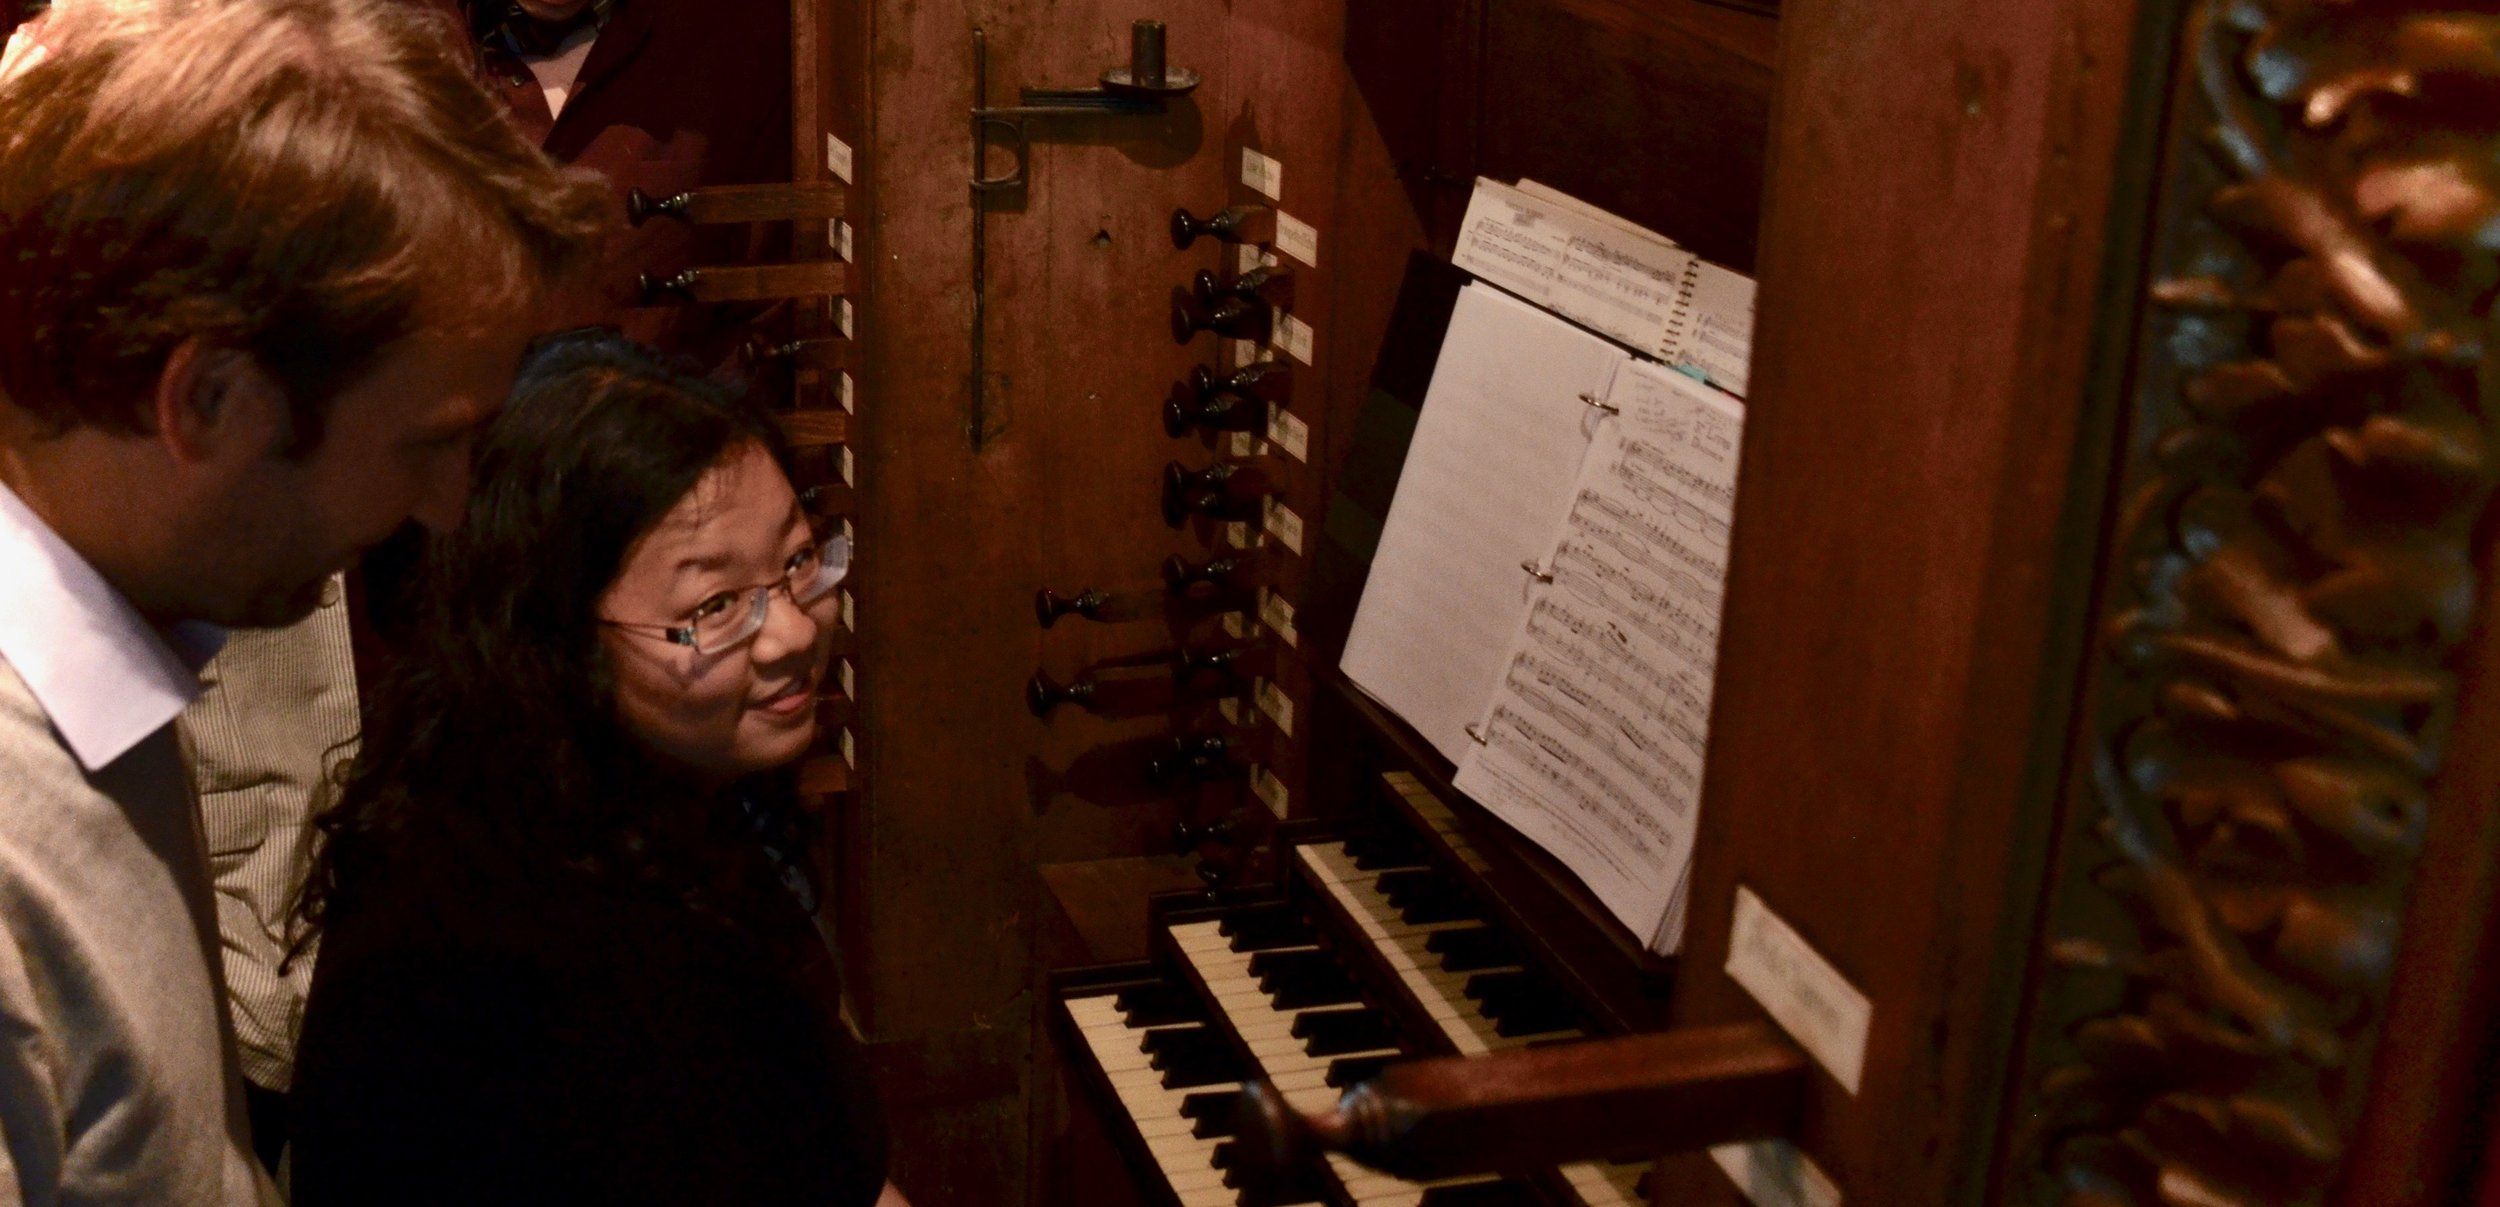 Jennifer working with Oliver Houette. -Boston Organ Studio